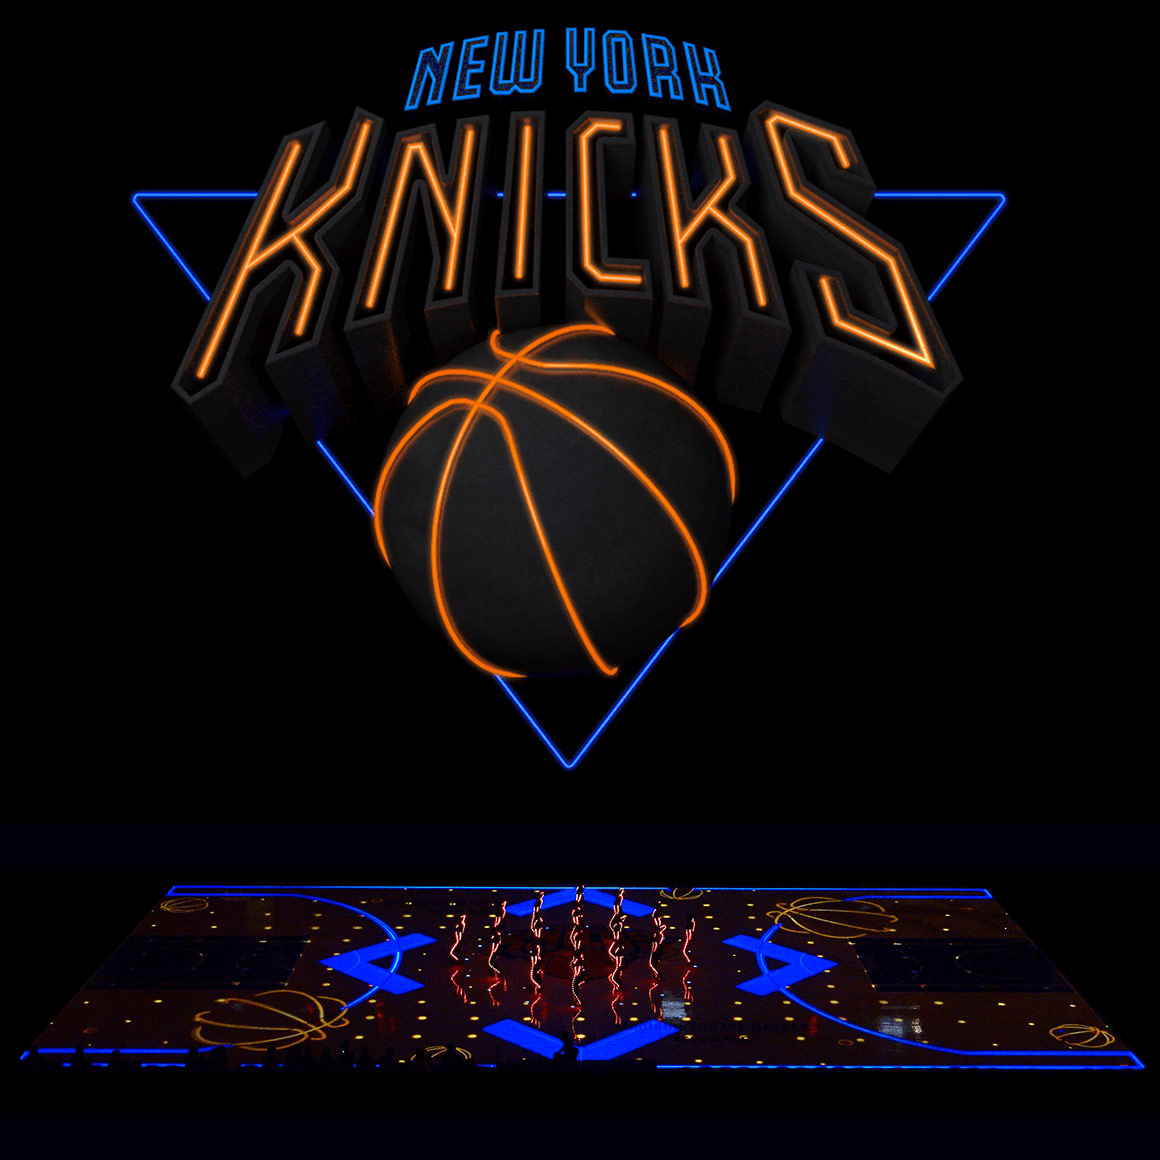 Madison Square Garden Knicks Projection Mapping